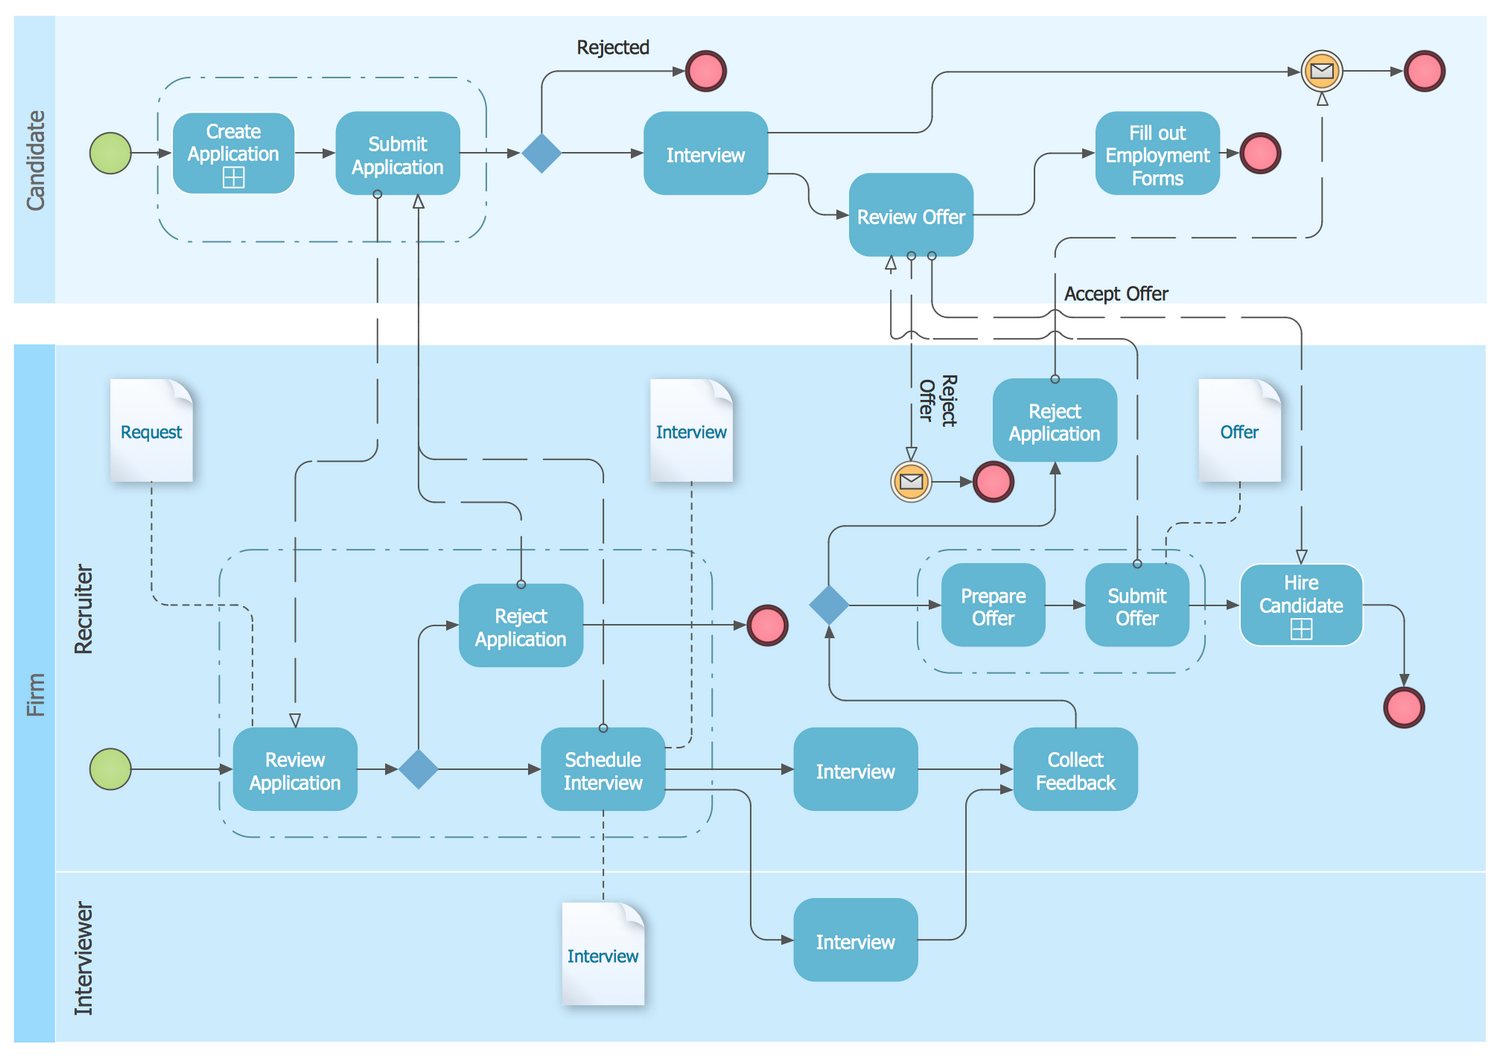 BPMN 1.2 Diagram — Hiring Process